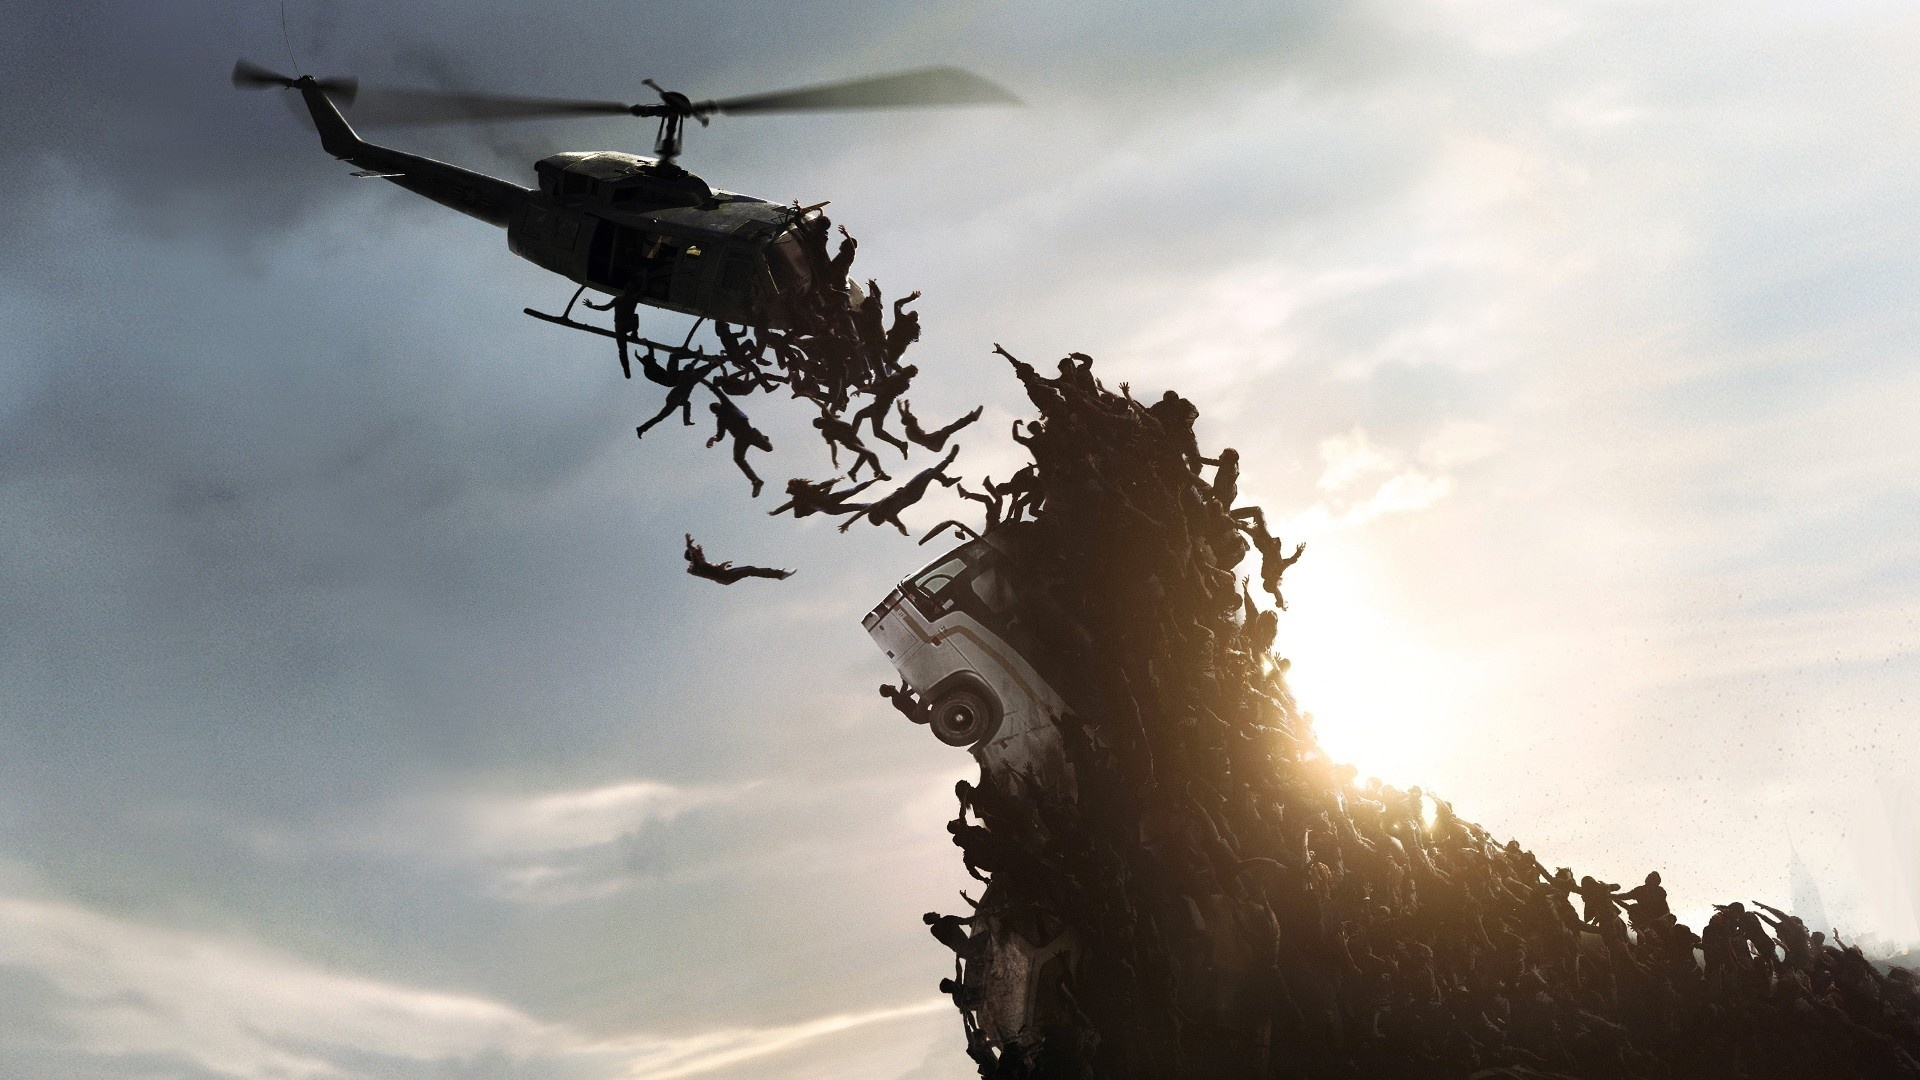 Zombies helicopter